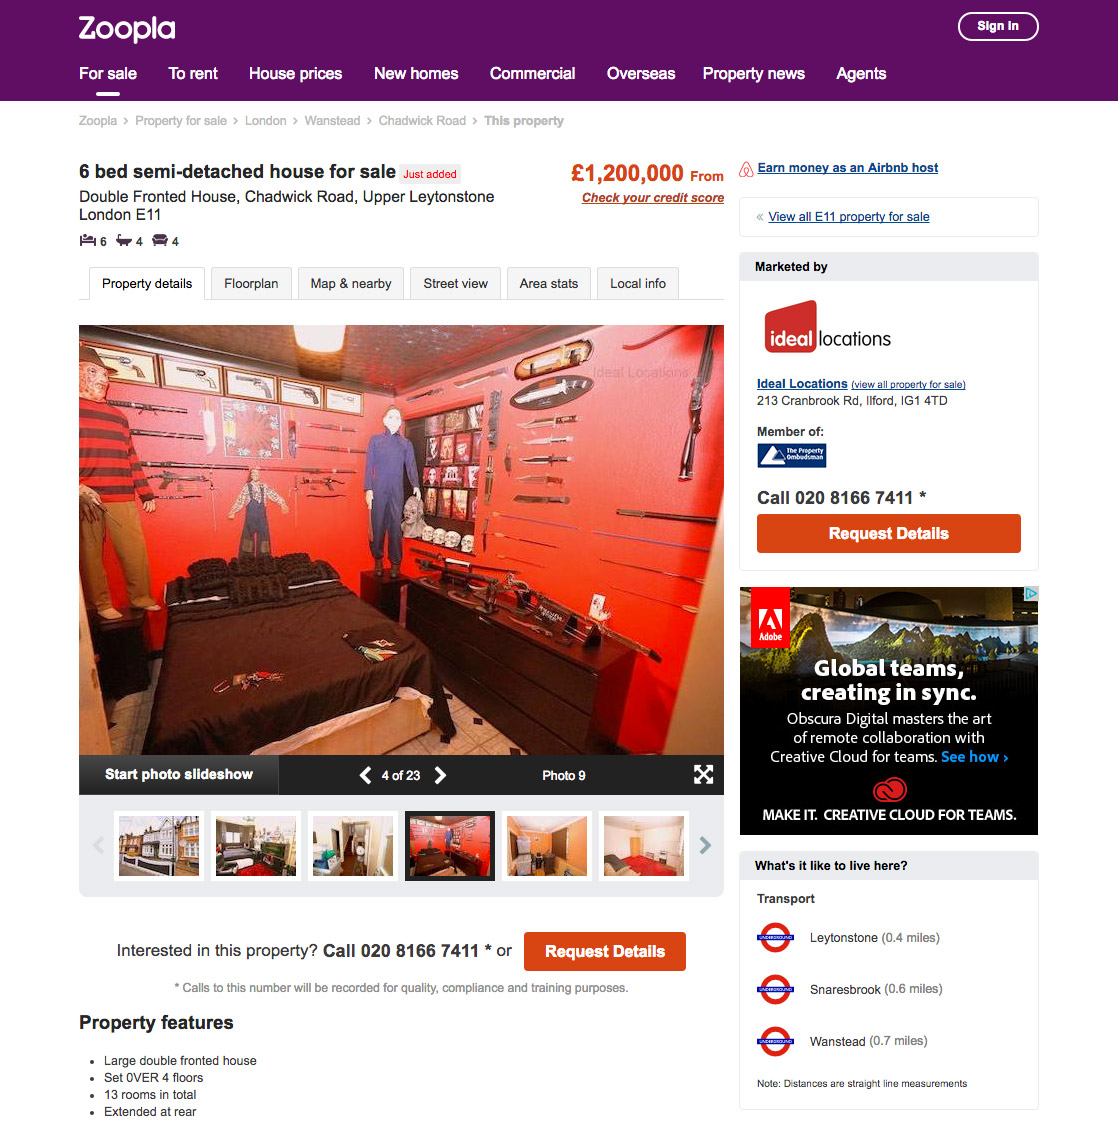 Zoopla on Sept. 9, 2016.